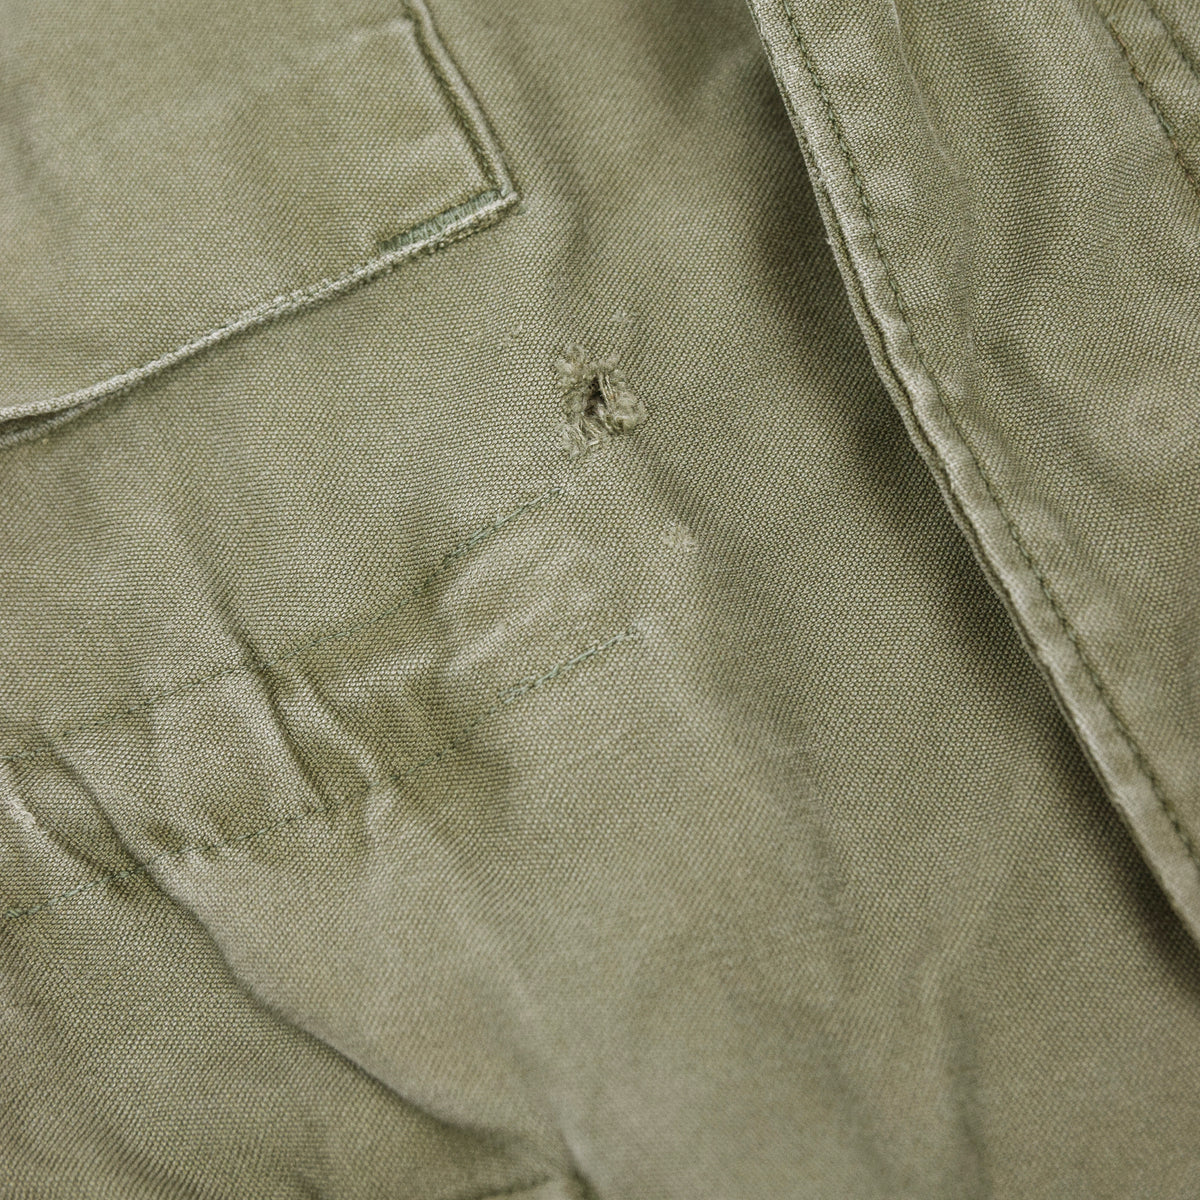 Vintage 50s M-1951 Korean War US Army Field Jacket OG-107 Olive Green M hole